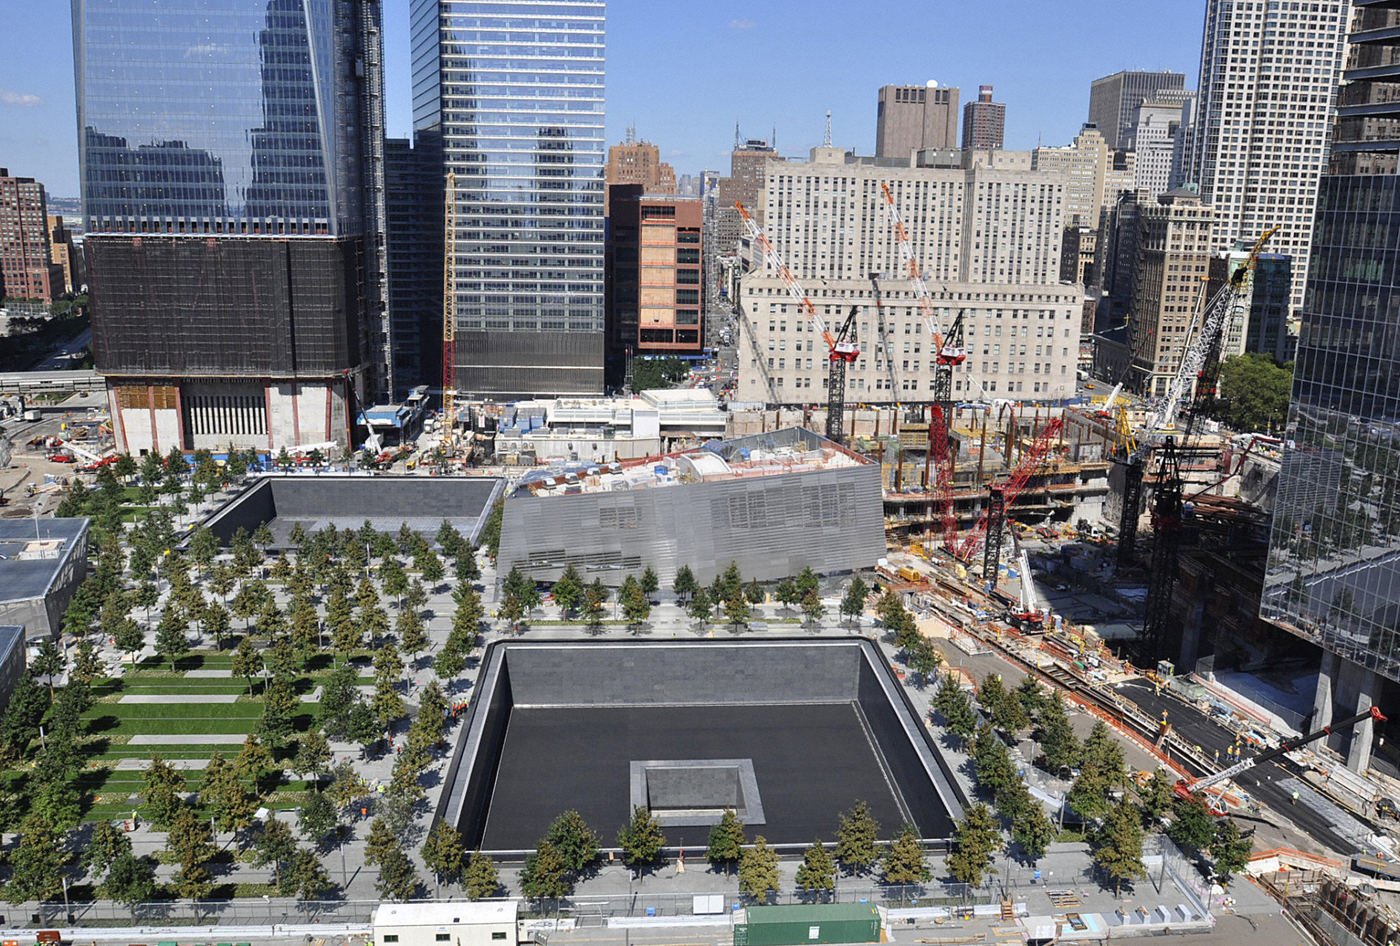 Ground_zero_construction_vue_aérienne_